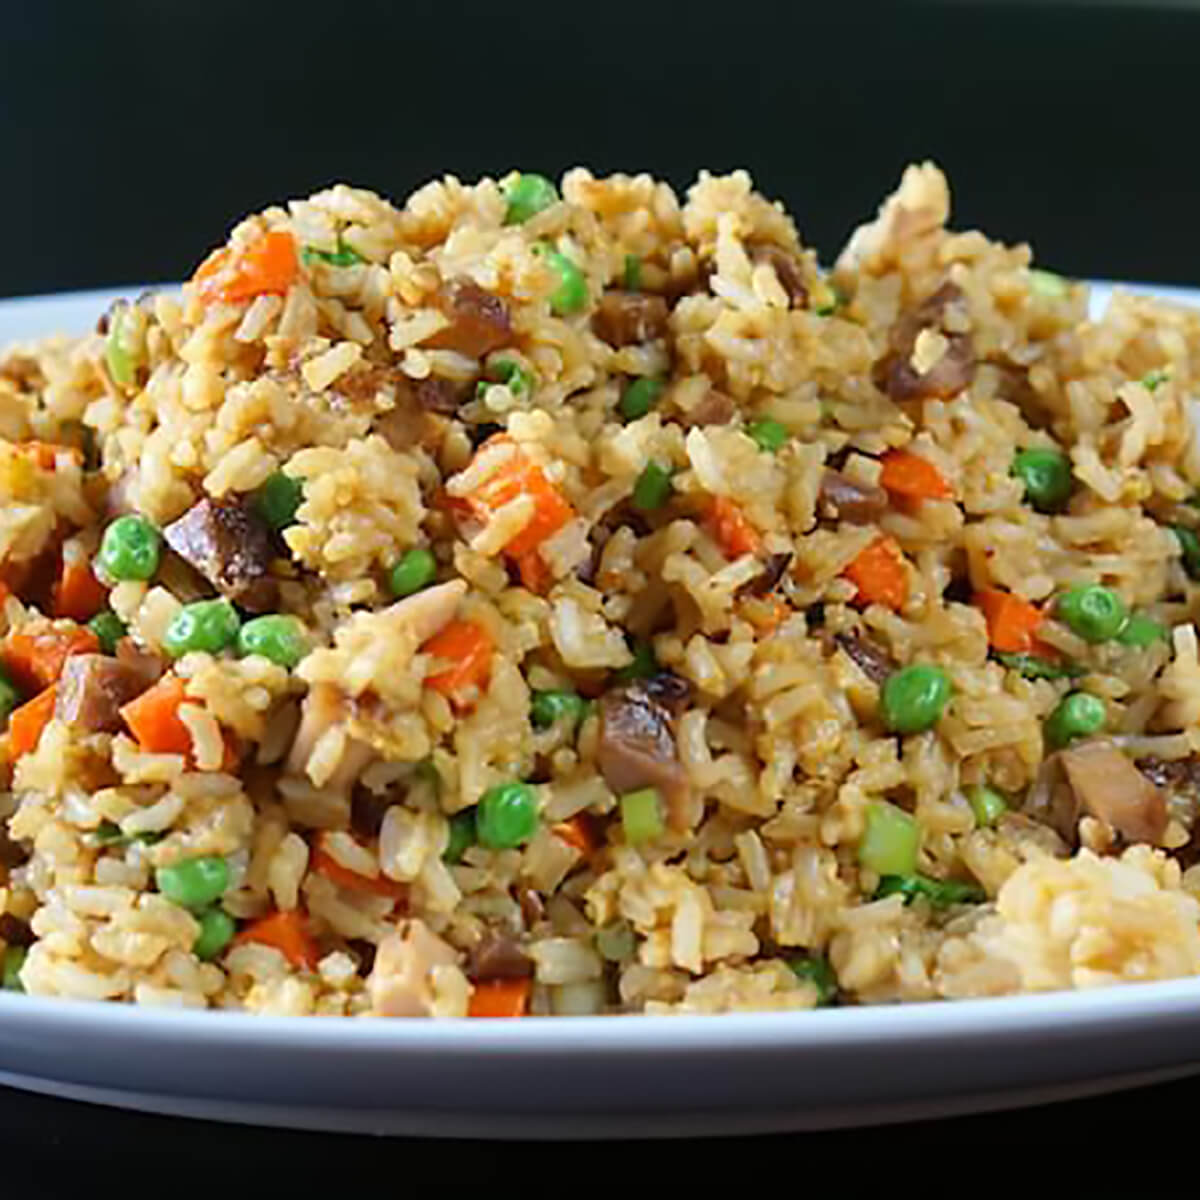 Chicken Fried Rice on a white platter.